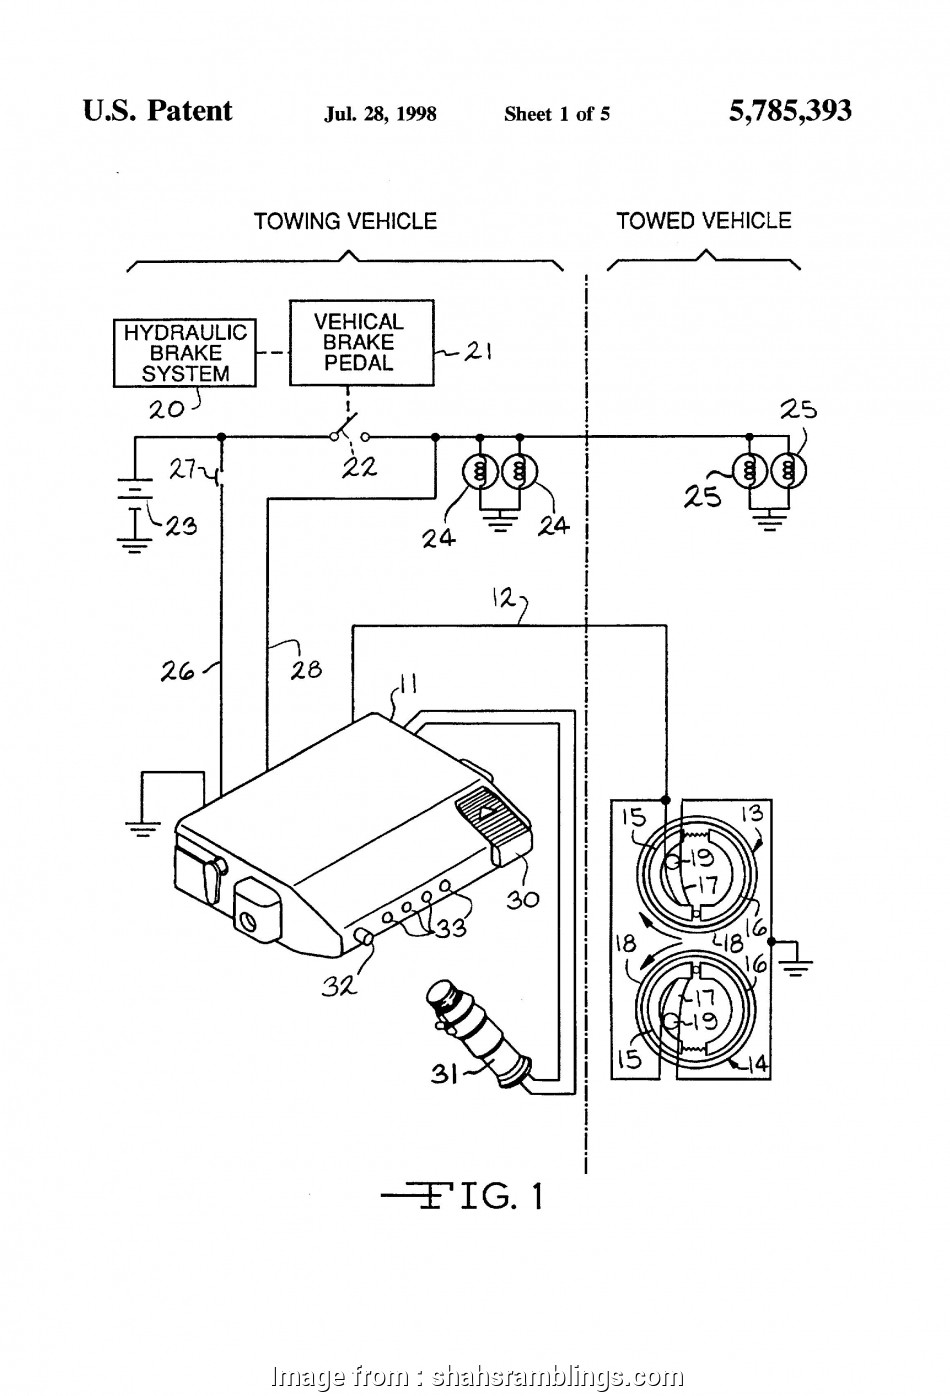 kelsey trailer brake controller wiring diagram Journey Brake Controller Wiring Diagram, Wiring Diagram Of Trailer Brakes & Ford E250 Trailer Wiring Diagram 18 Fantastic Kelsey Trailer Brake Controller Wiring Diagram Ideas